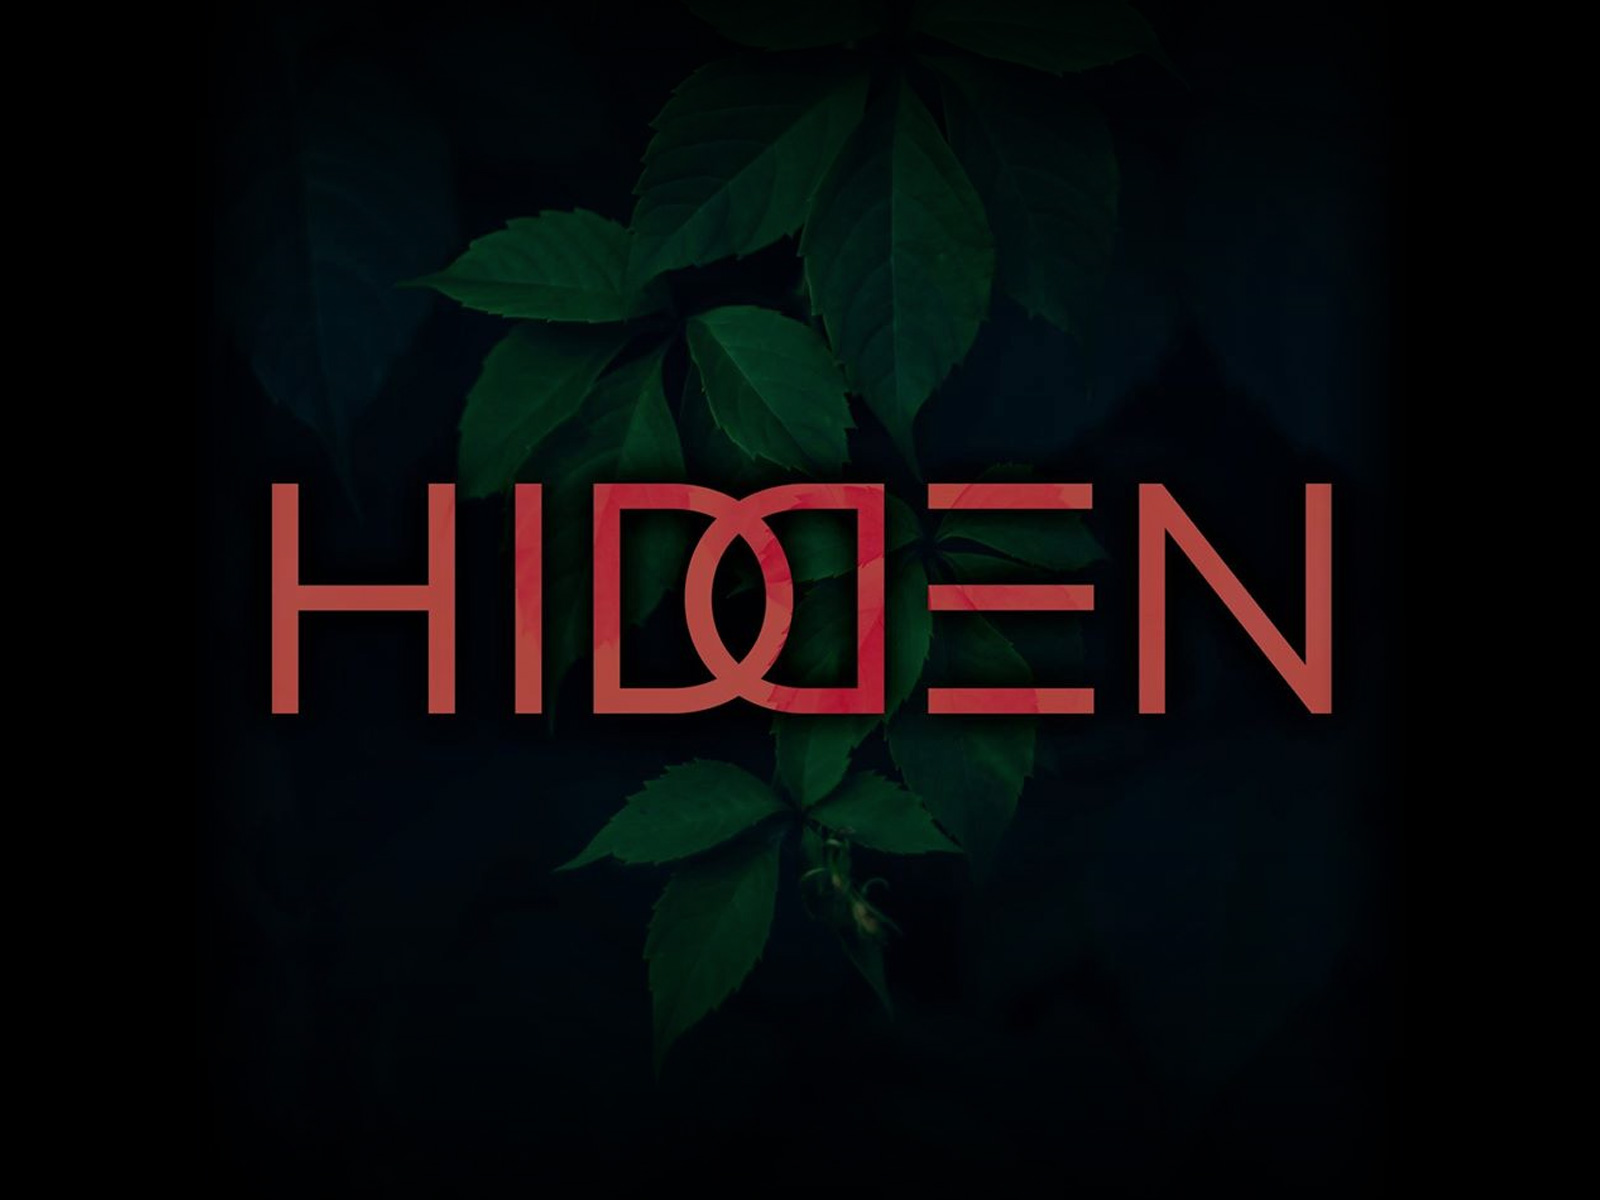 hidden-2020-lineup-feature-oz-edm